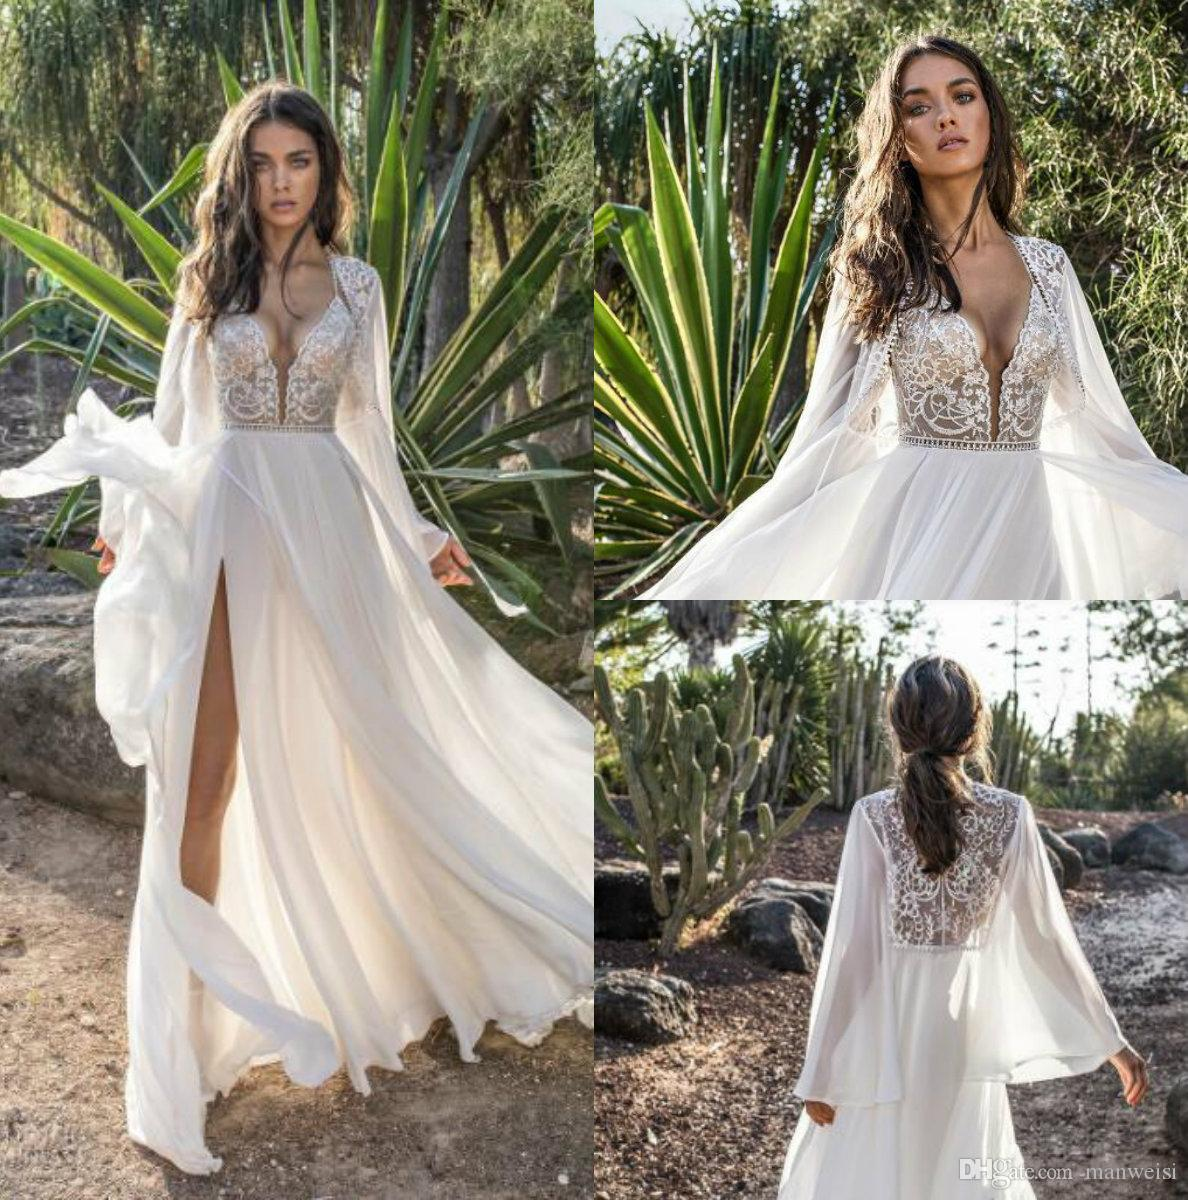 d876e74a2b0 Discount 2018 Asaf Dadush Boho Wedding Dresses With Long Sleeve Wrap Side  Split Beach Chiffon Bohemia Bridal Gowns Beaded Lace Wedding Dress Wedding  Dreses ...